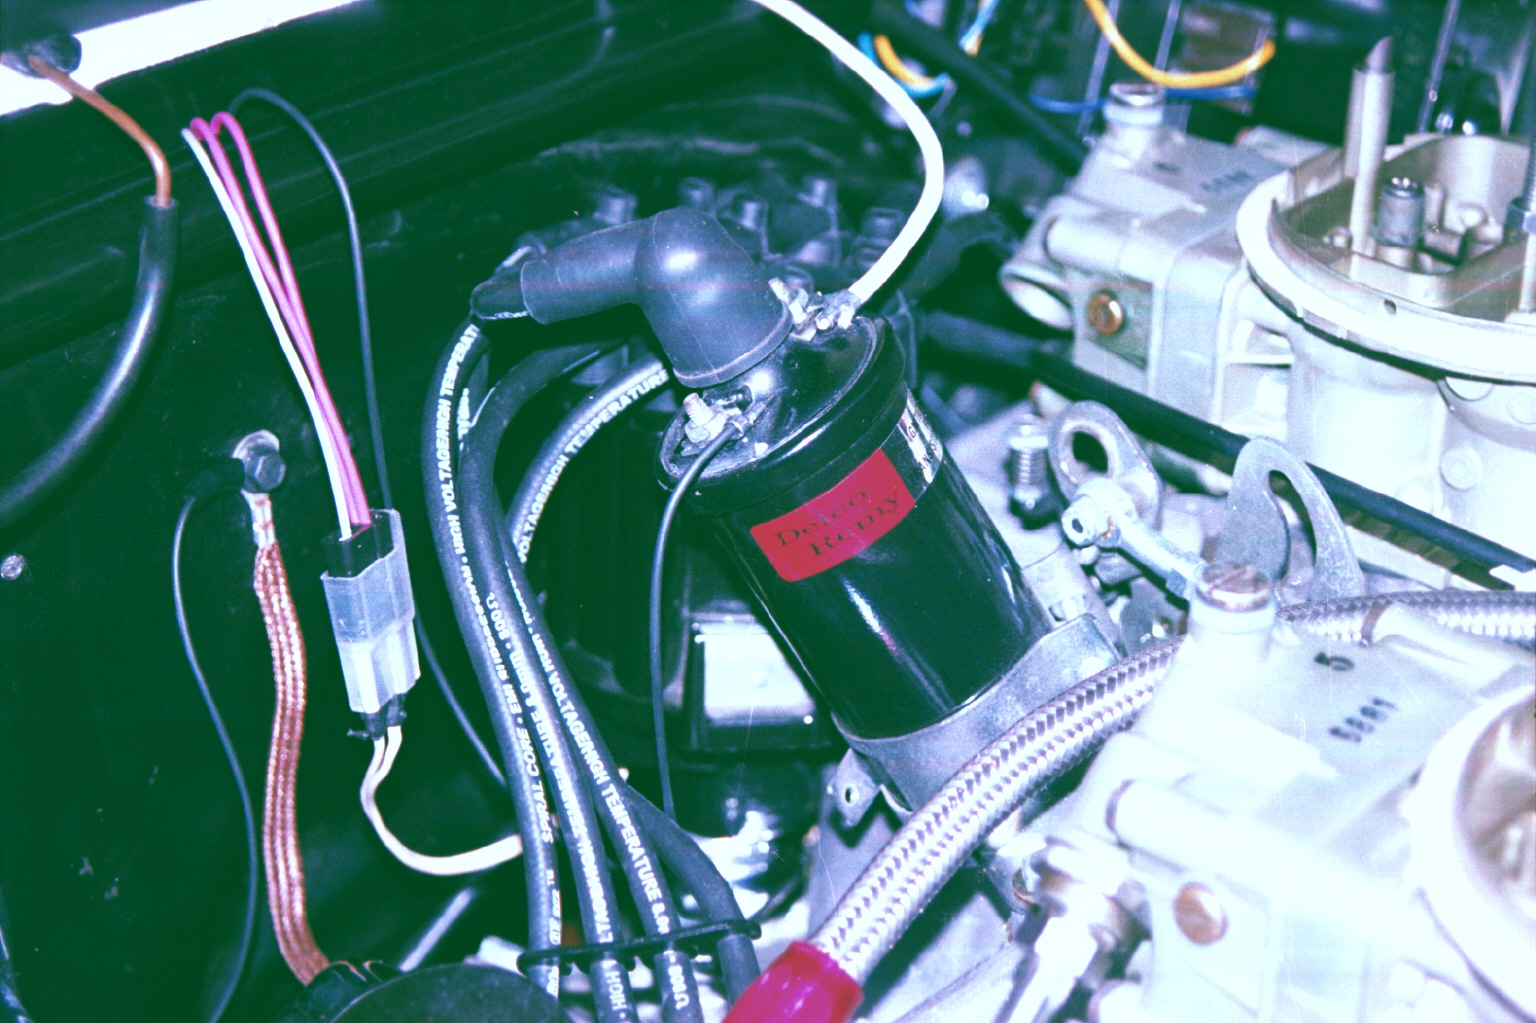 68 Camaro Wiring Coil Modern Design Of Diagram Console Transistor Ignition Systems Rh Camaros Org 1967 Pdf